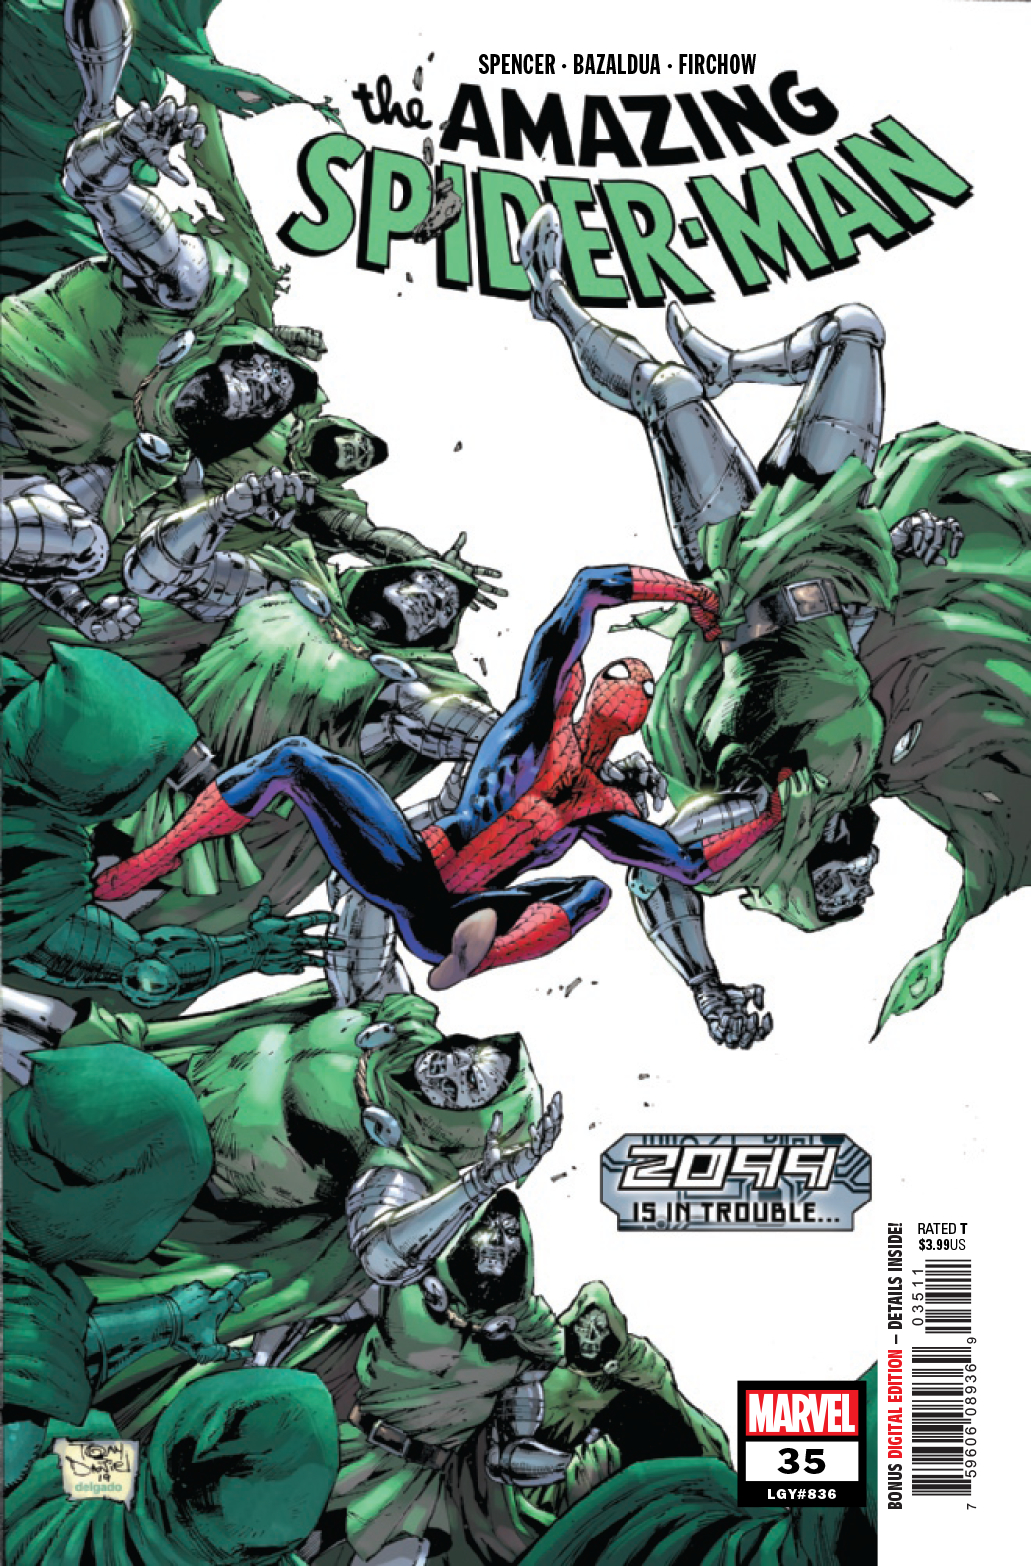 AMAZING SPIDER-MAN #35 2099